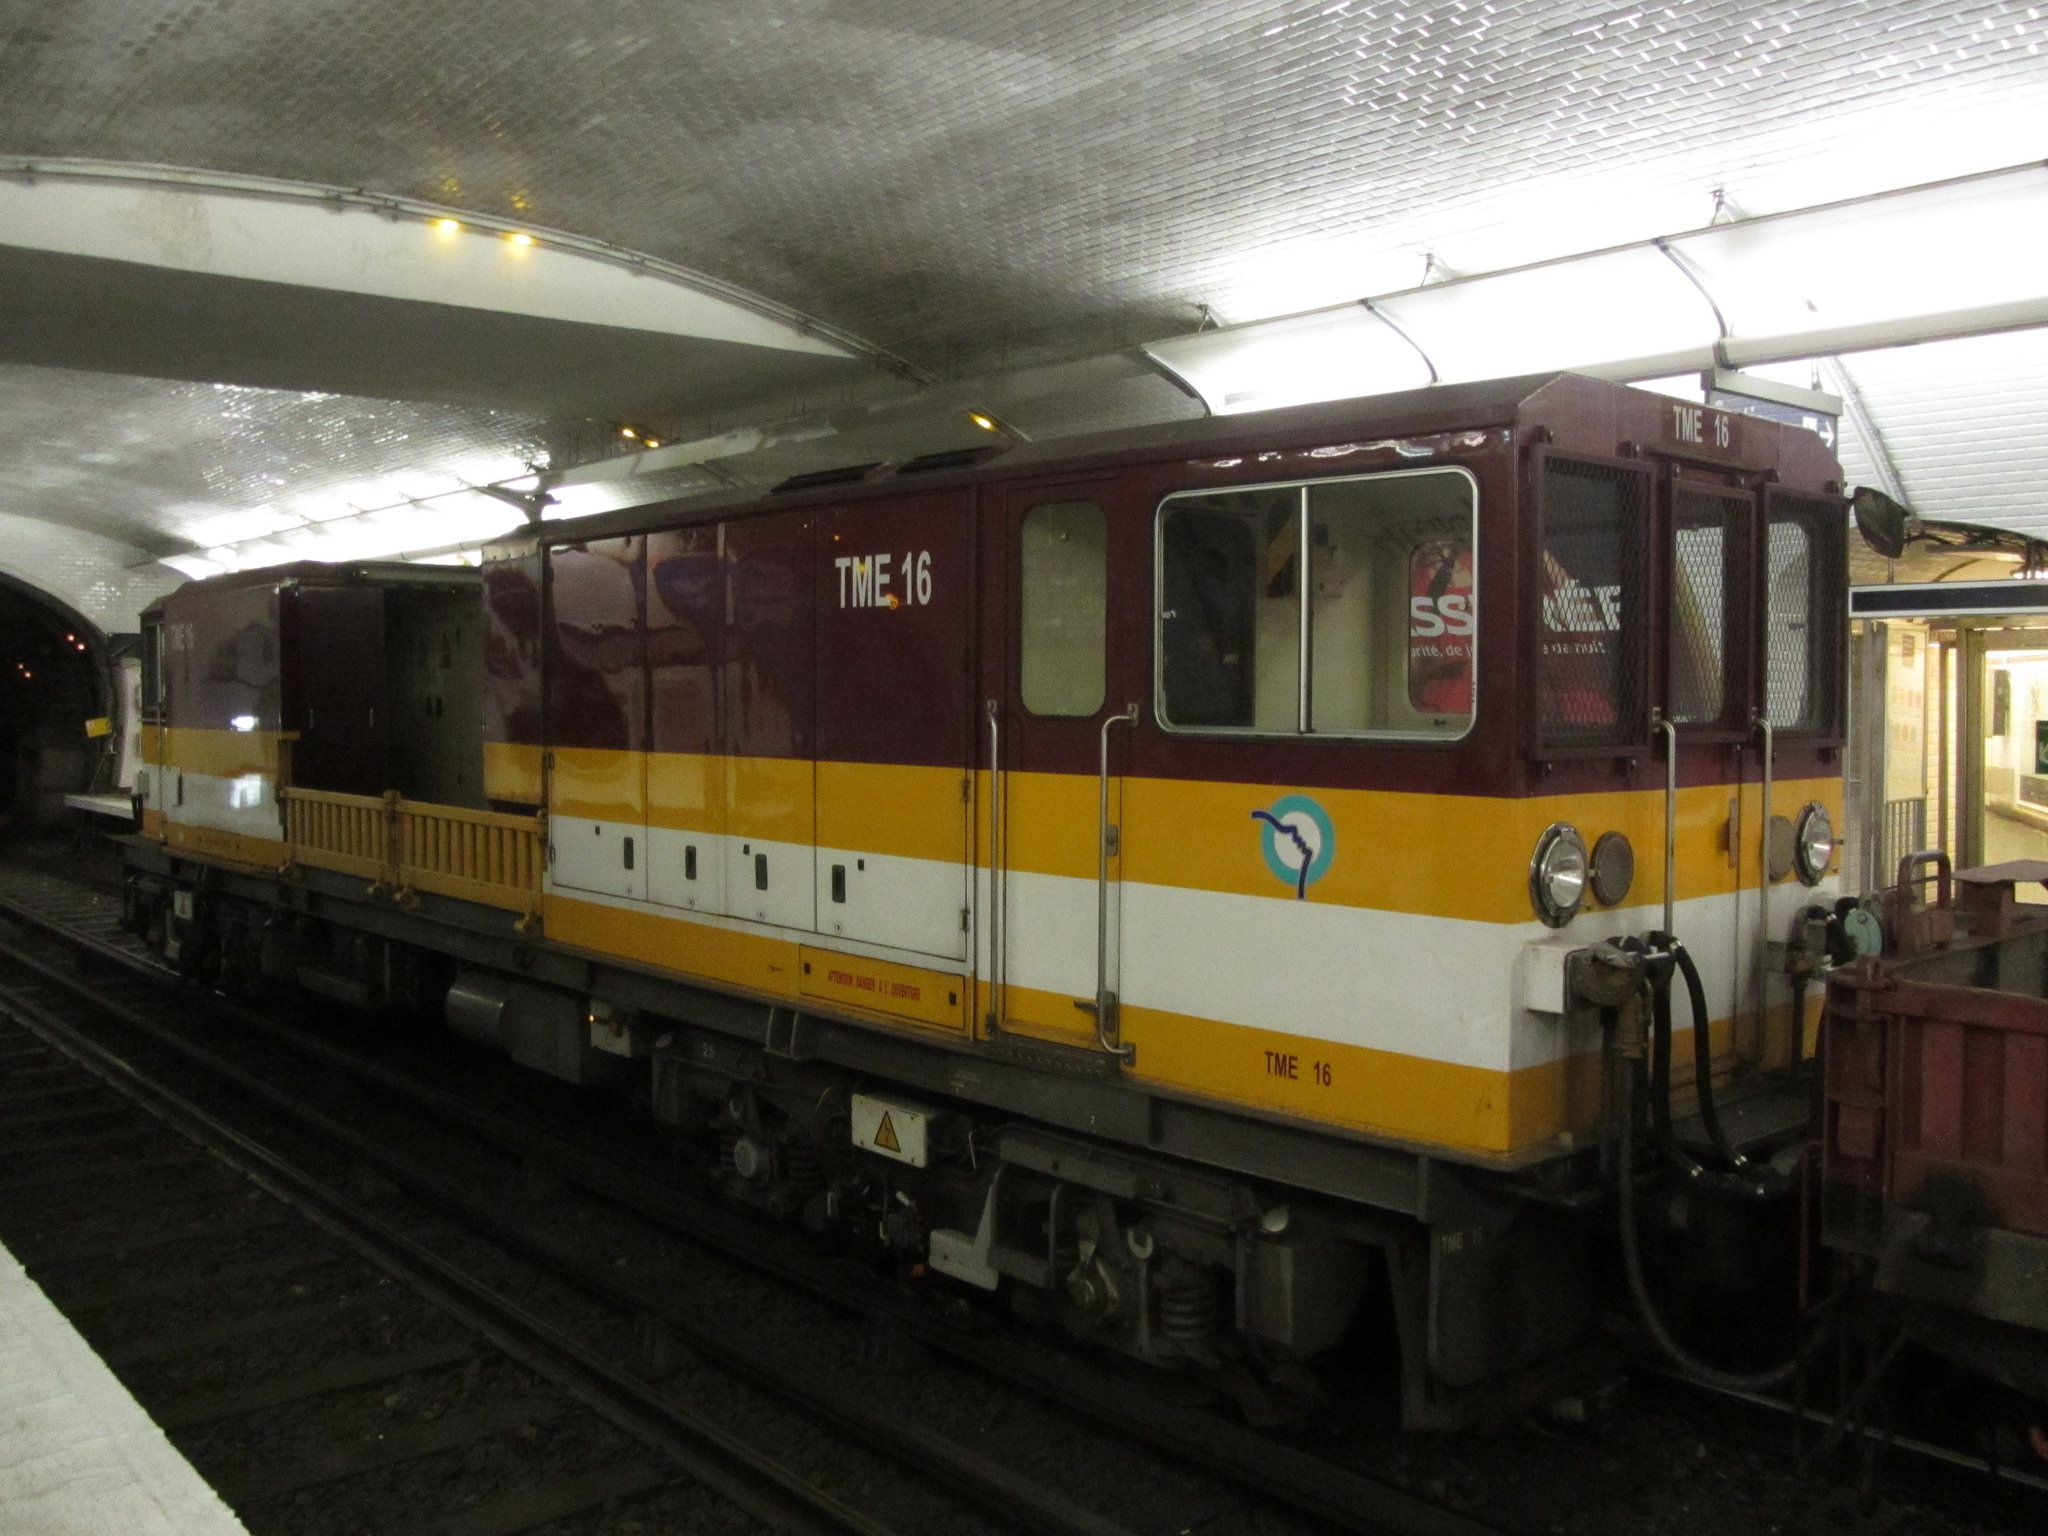 Https Flic Kr P Nd41pq Maubert Mutualite Metro Train Metro Vehicles